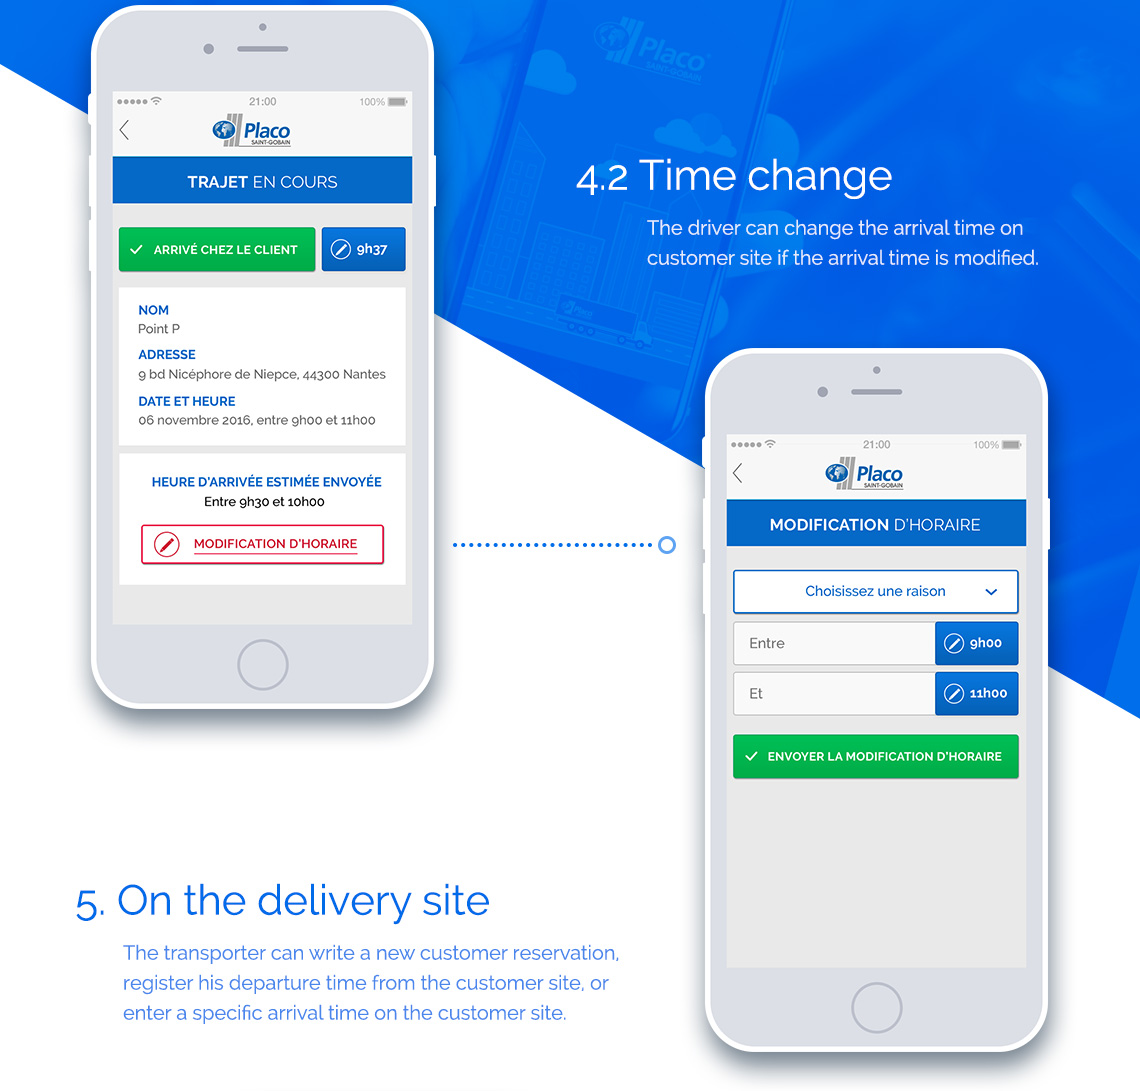 Delivery in progress: Time change, the driver can change the arrival time on customer site if the arrival time is modified.